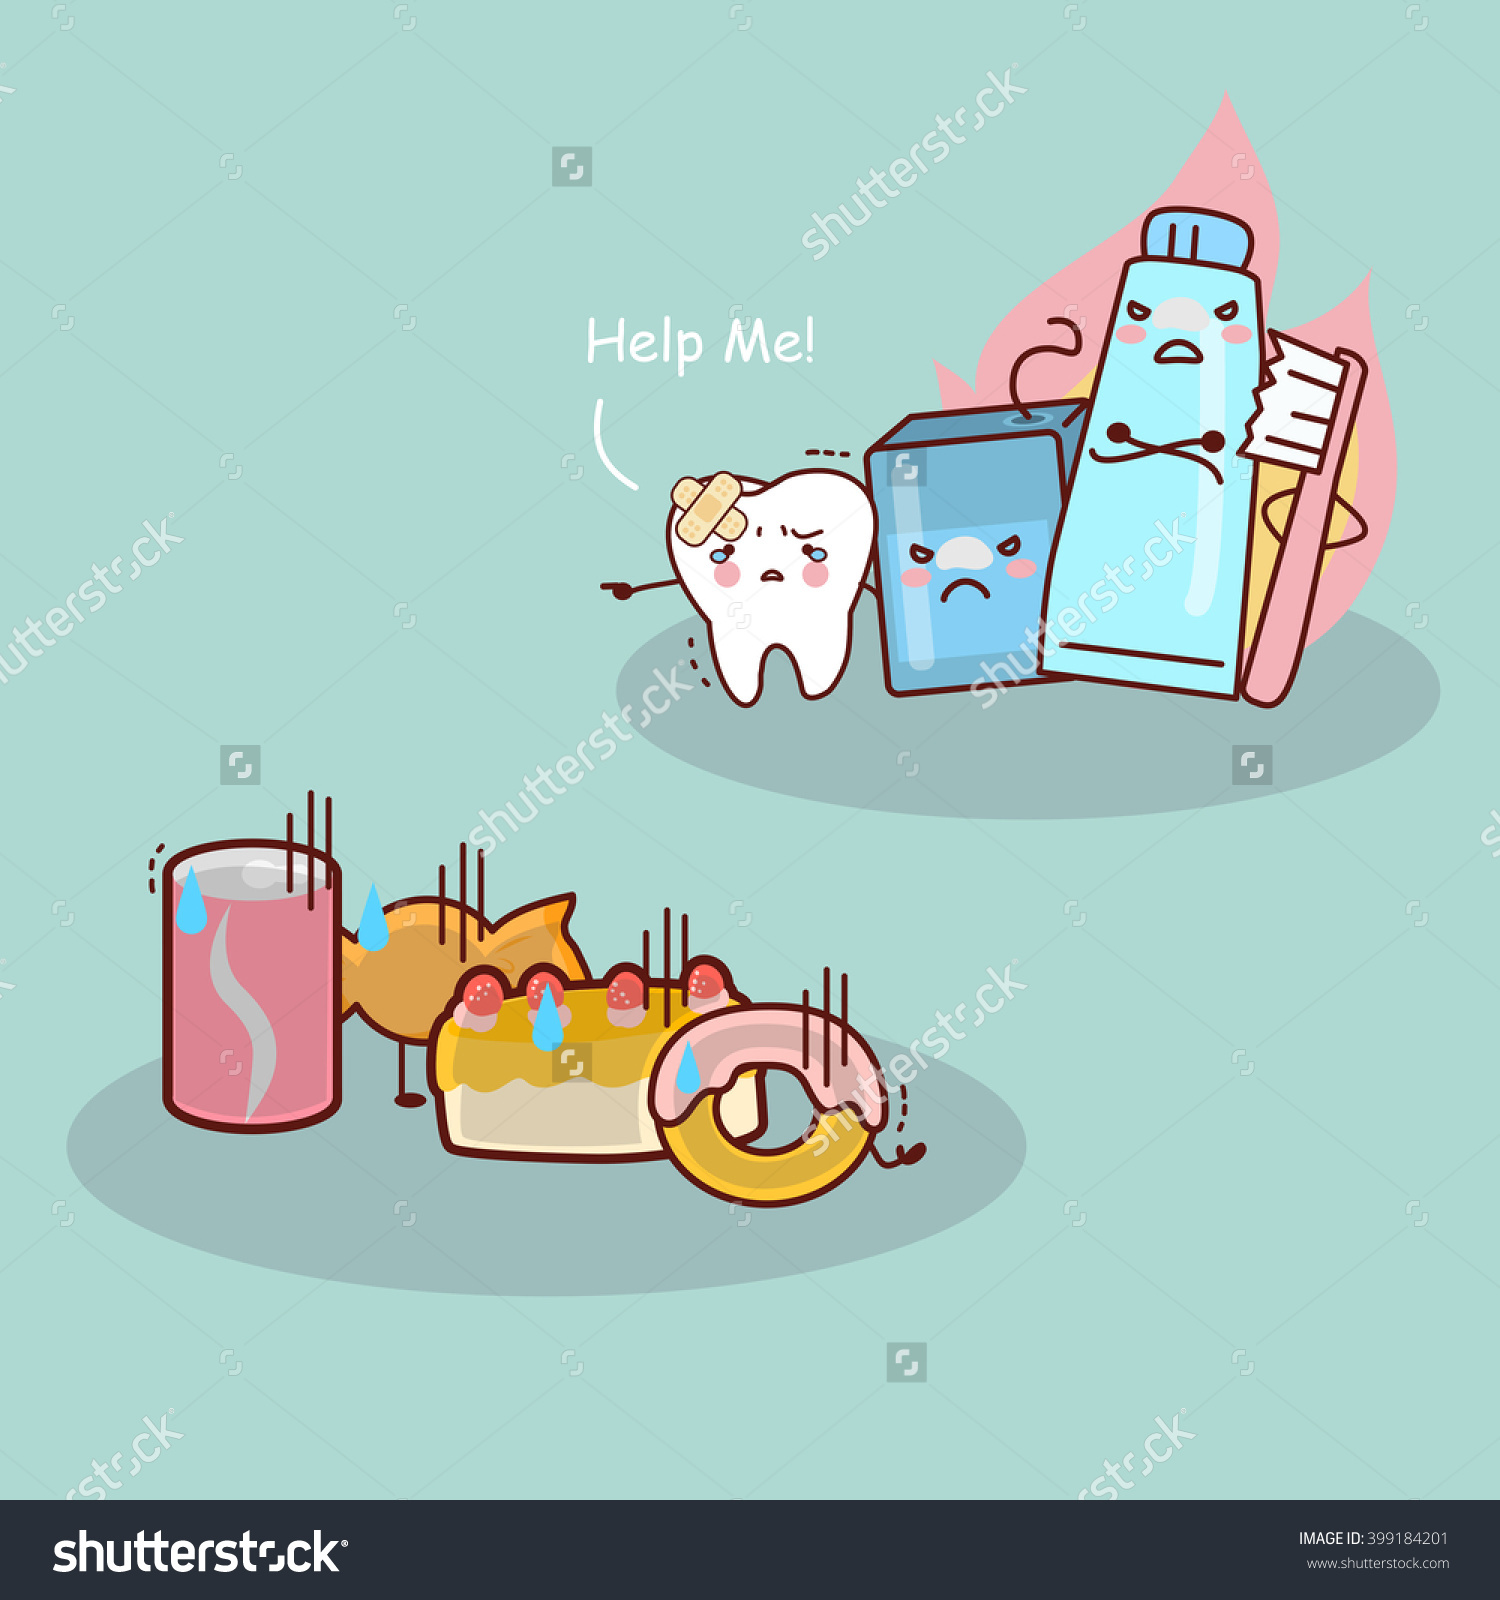 Cute Cartoon Tooth,Floss,Toothbrush And Toothpaste Against Candy.